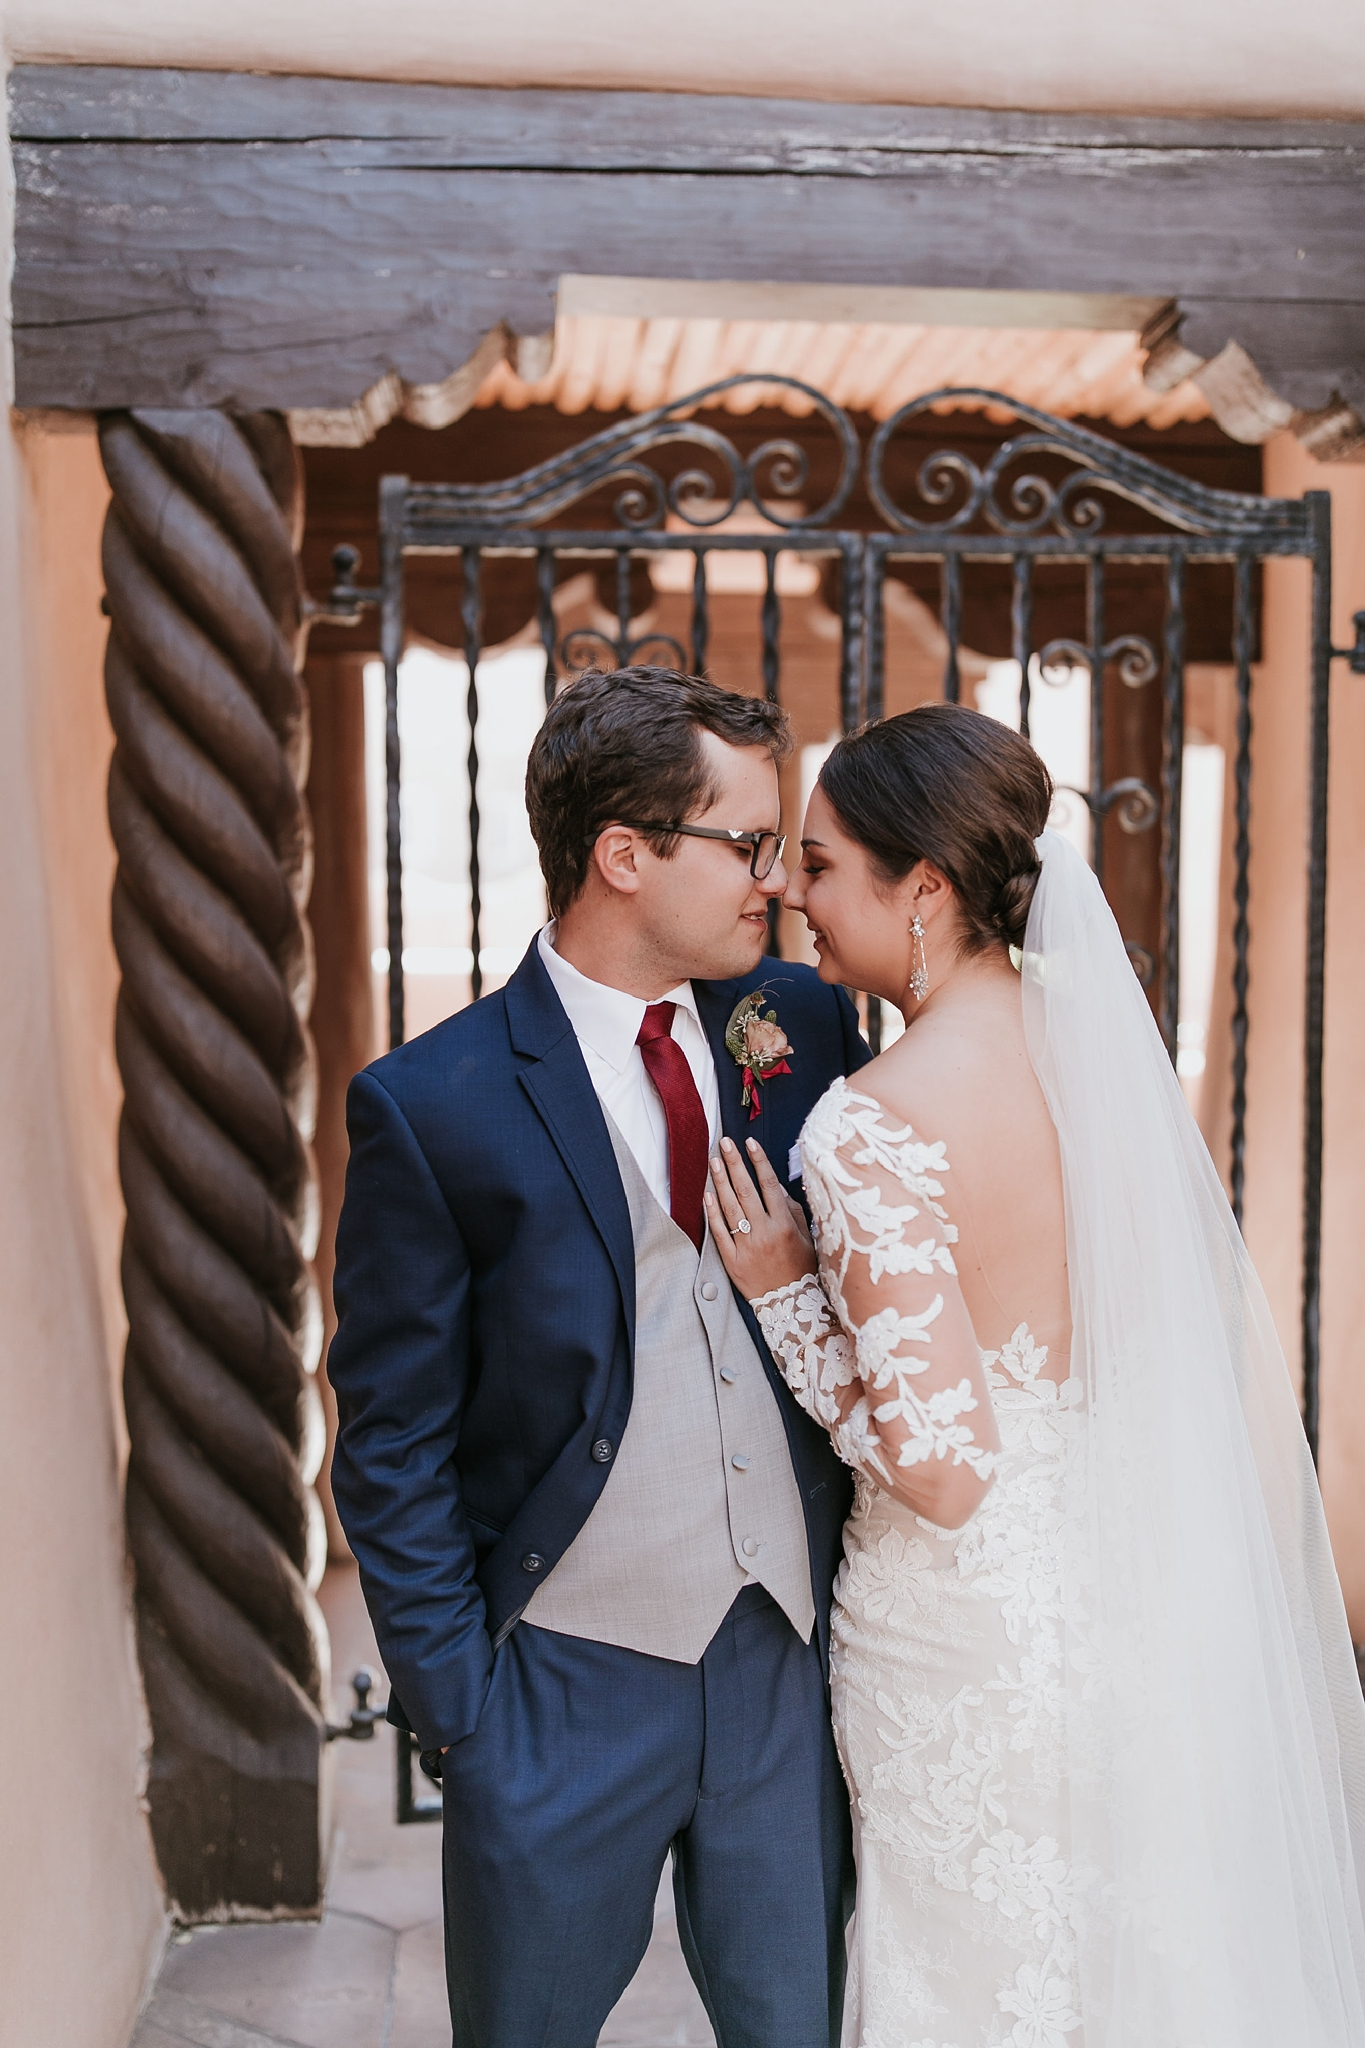 Alicia+lucia+photography+-+albuquerque+wedding+photographer+-+santa+fe+wedding+photography+-+new+mexico+wedding+photographer+-+new+mexico+wedding+-+engagement+-+santa+fe+wedding+-+la+fonda+on+the+plaza+-+la+fonda+wedding_0012.jpg